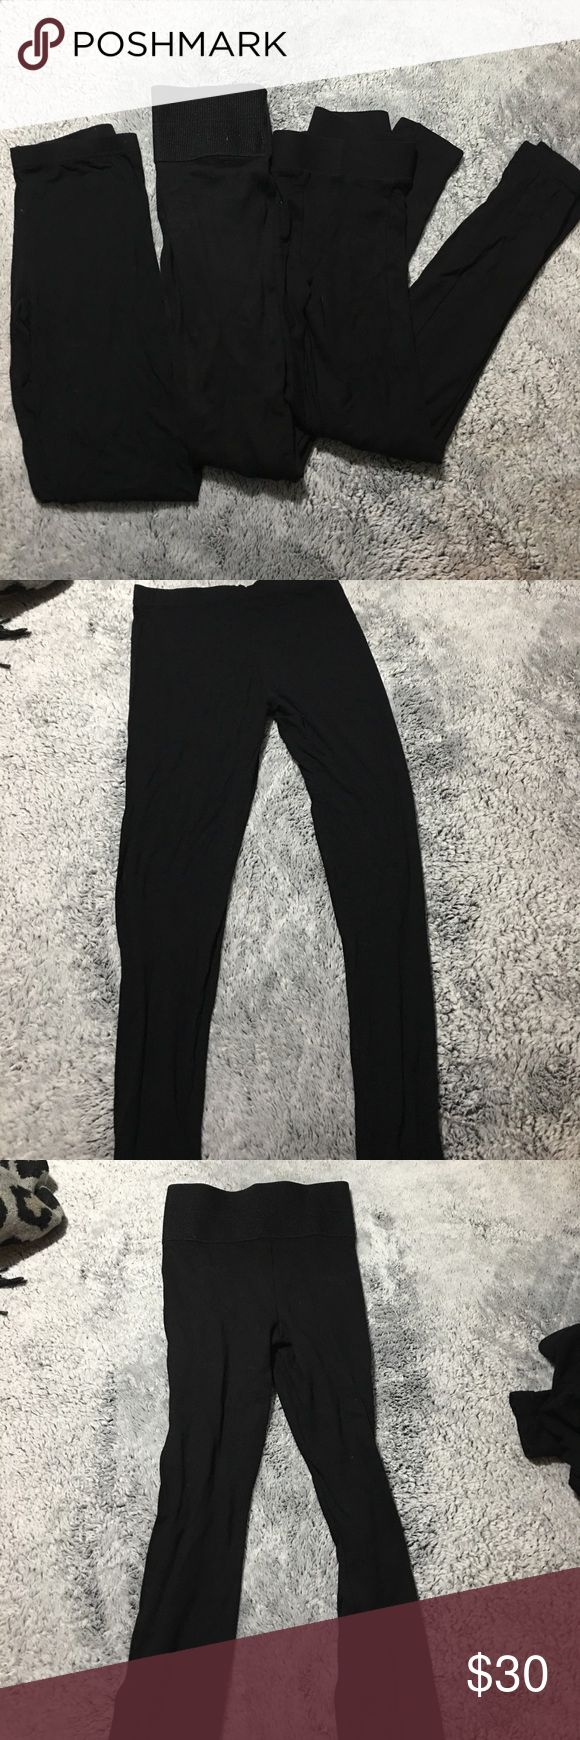 Topshop legging bundle All are in great condition with no fading. All three are different styles. One thin pair, one thicker pair, and one high waisted. Topshop Pants Leggings